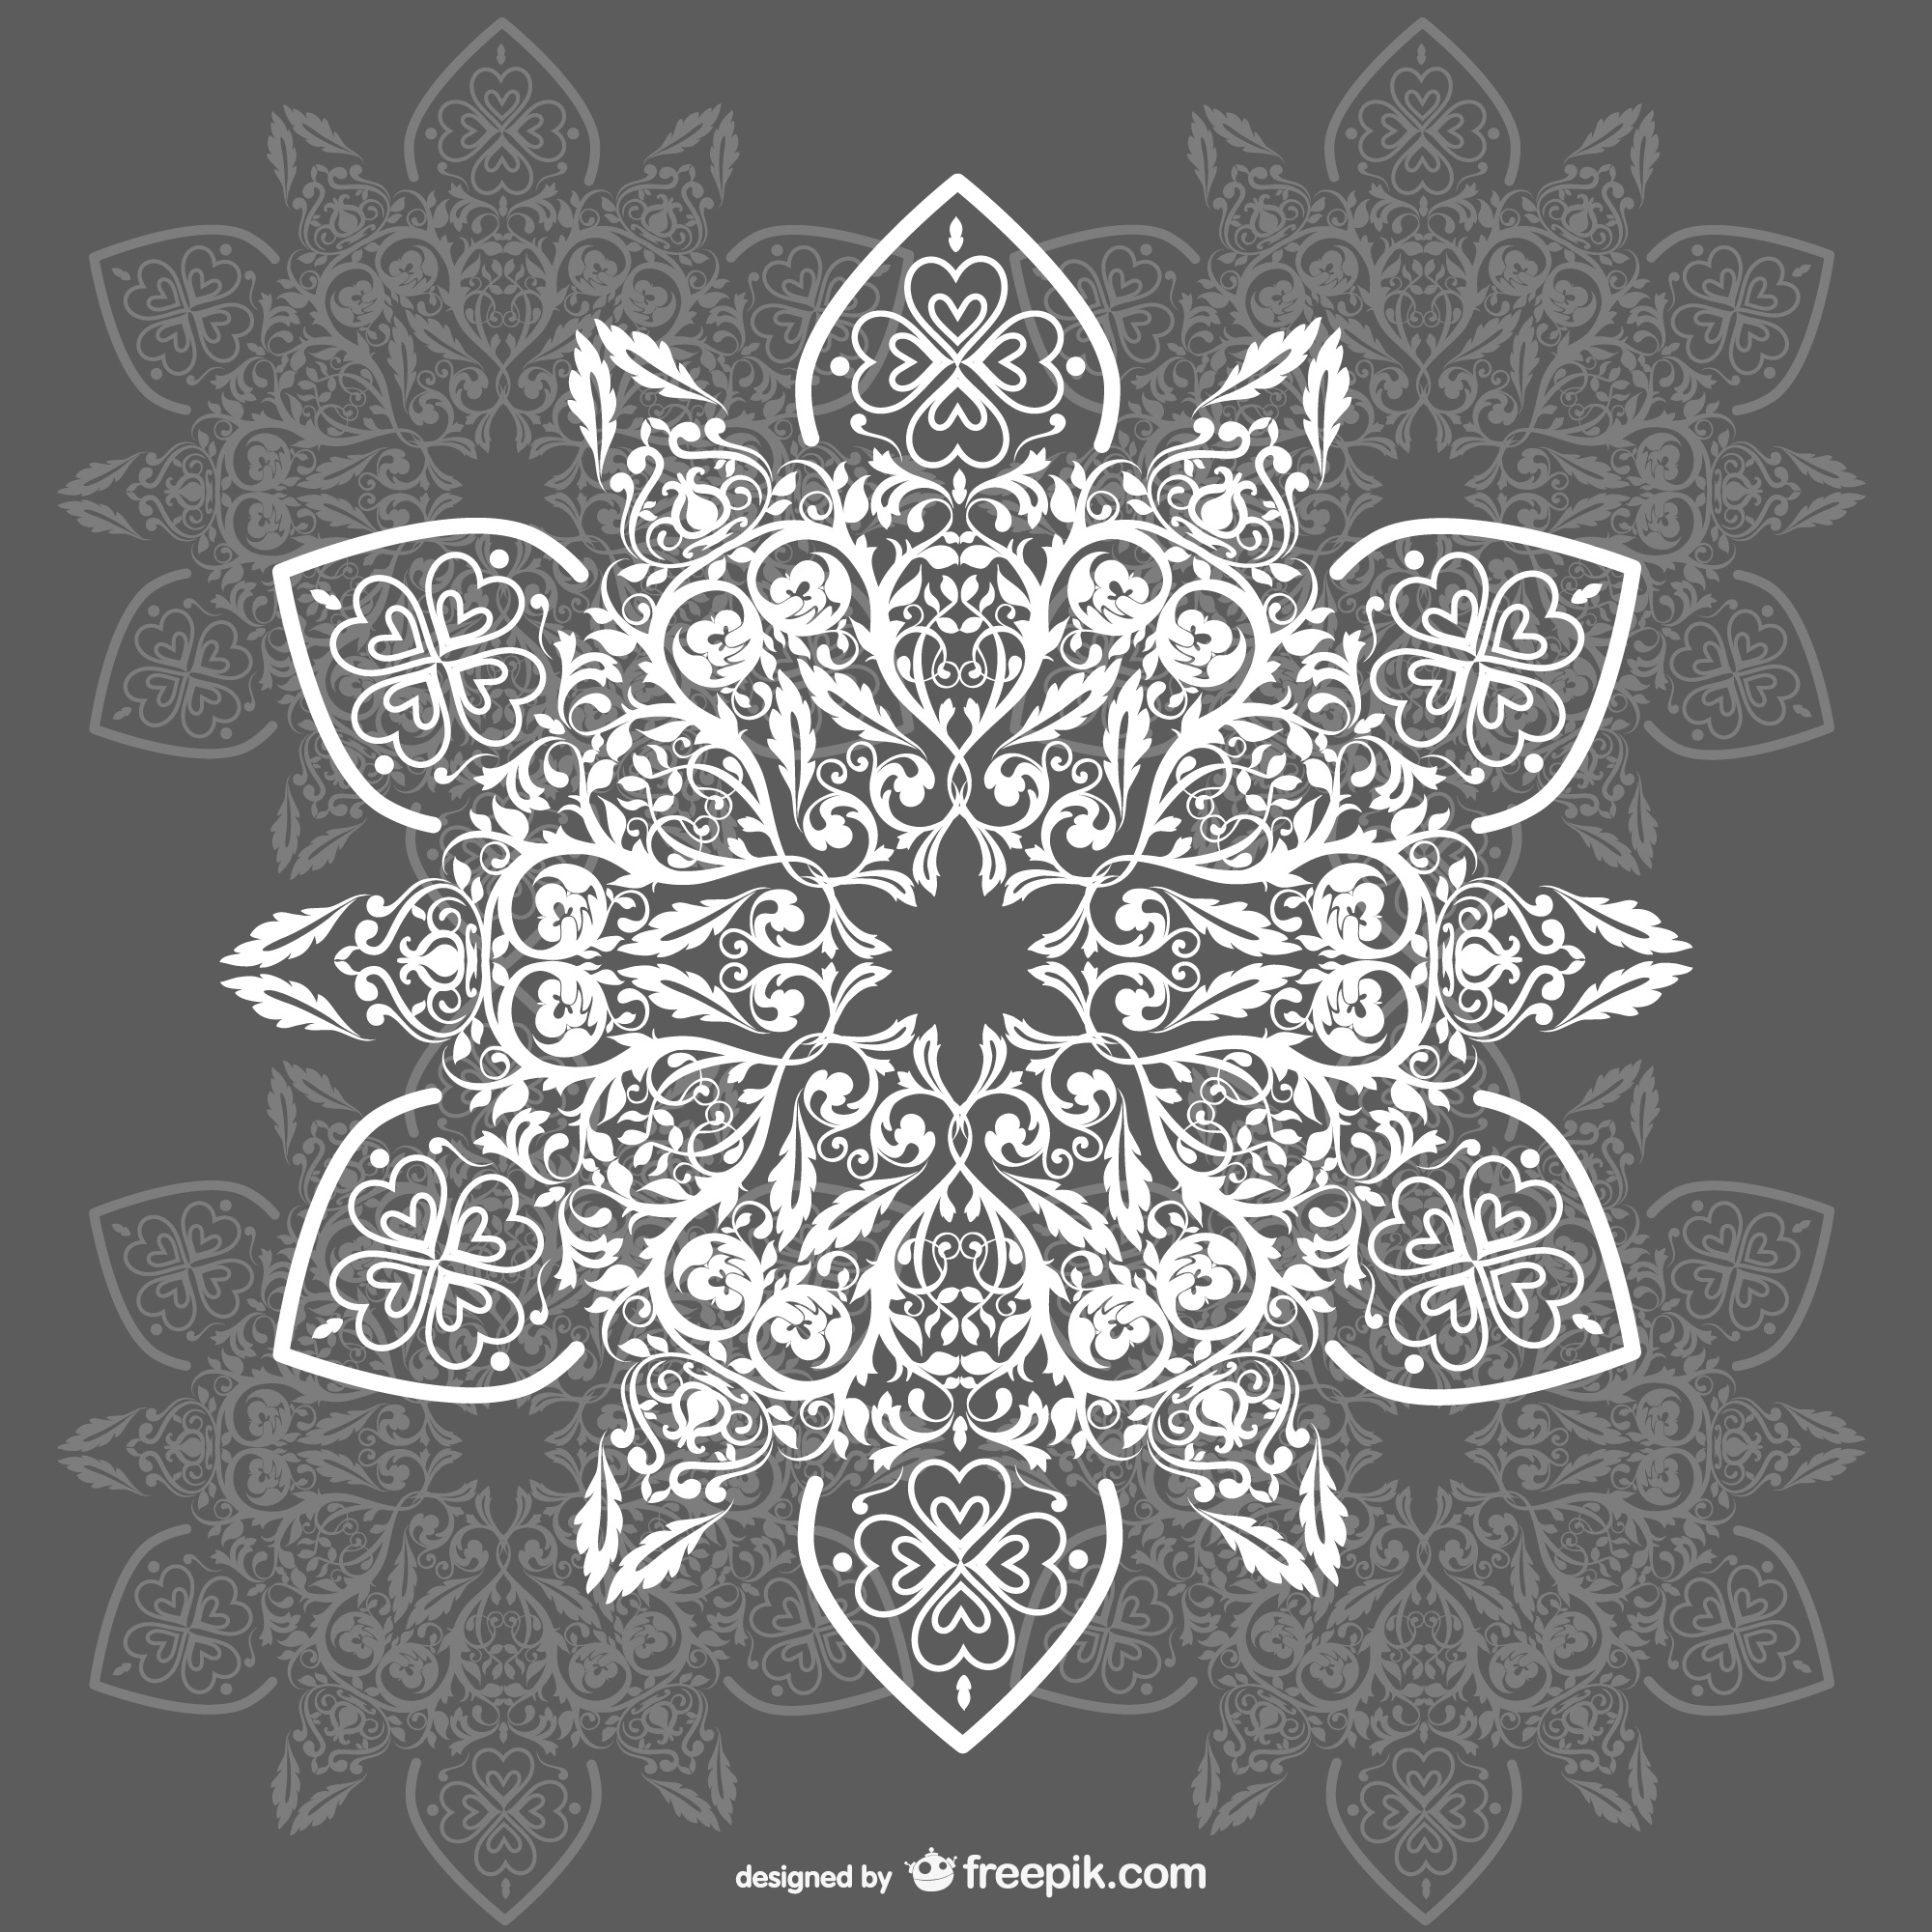 Arabesque ornaments background